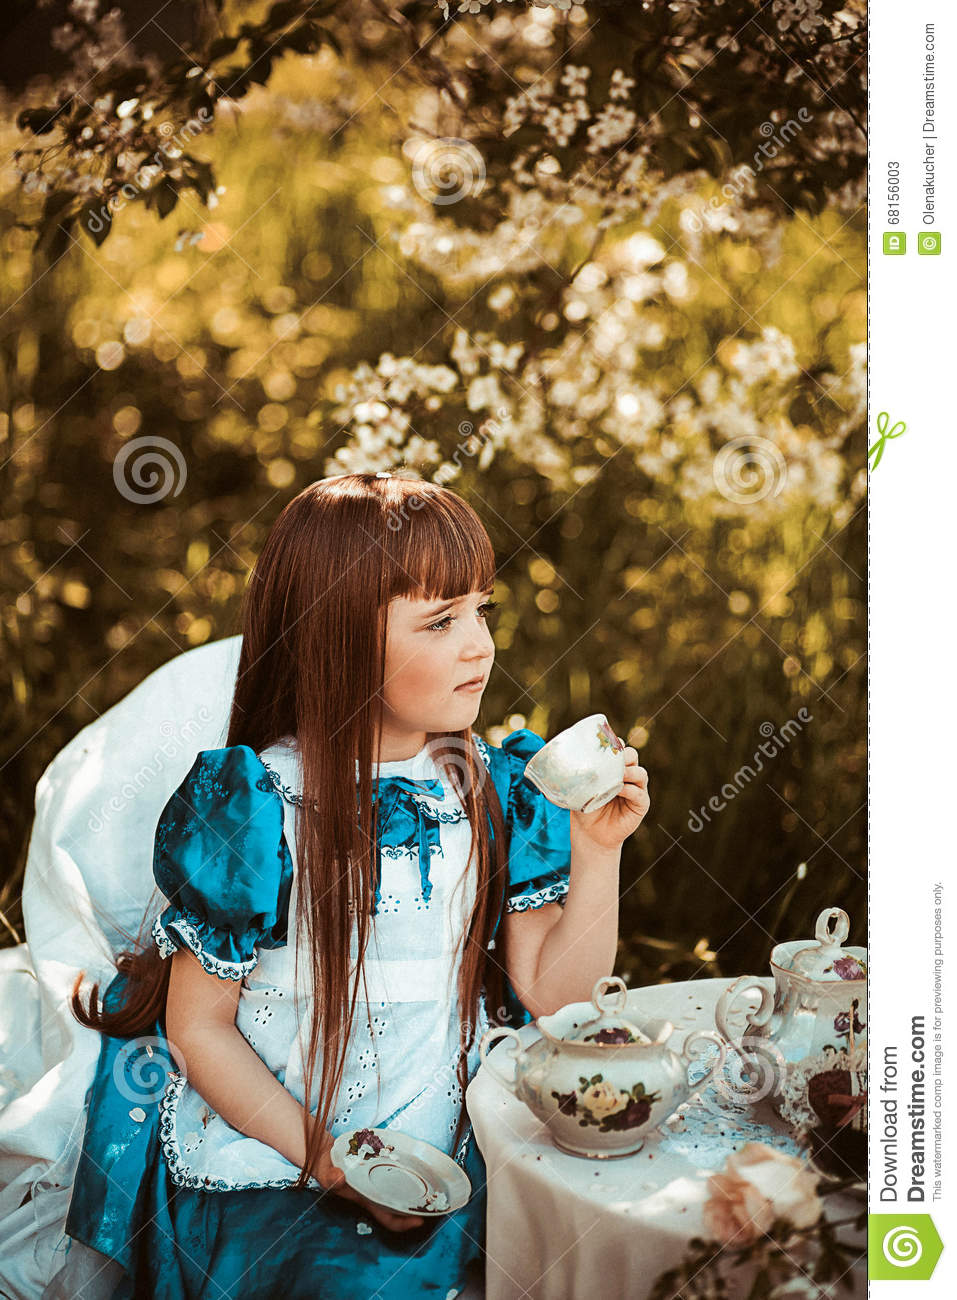 Cute Little Girl In A Spring Garden Drinking Tea Stock Image - Image ...